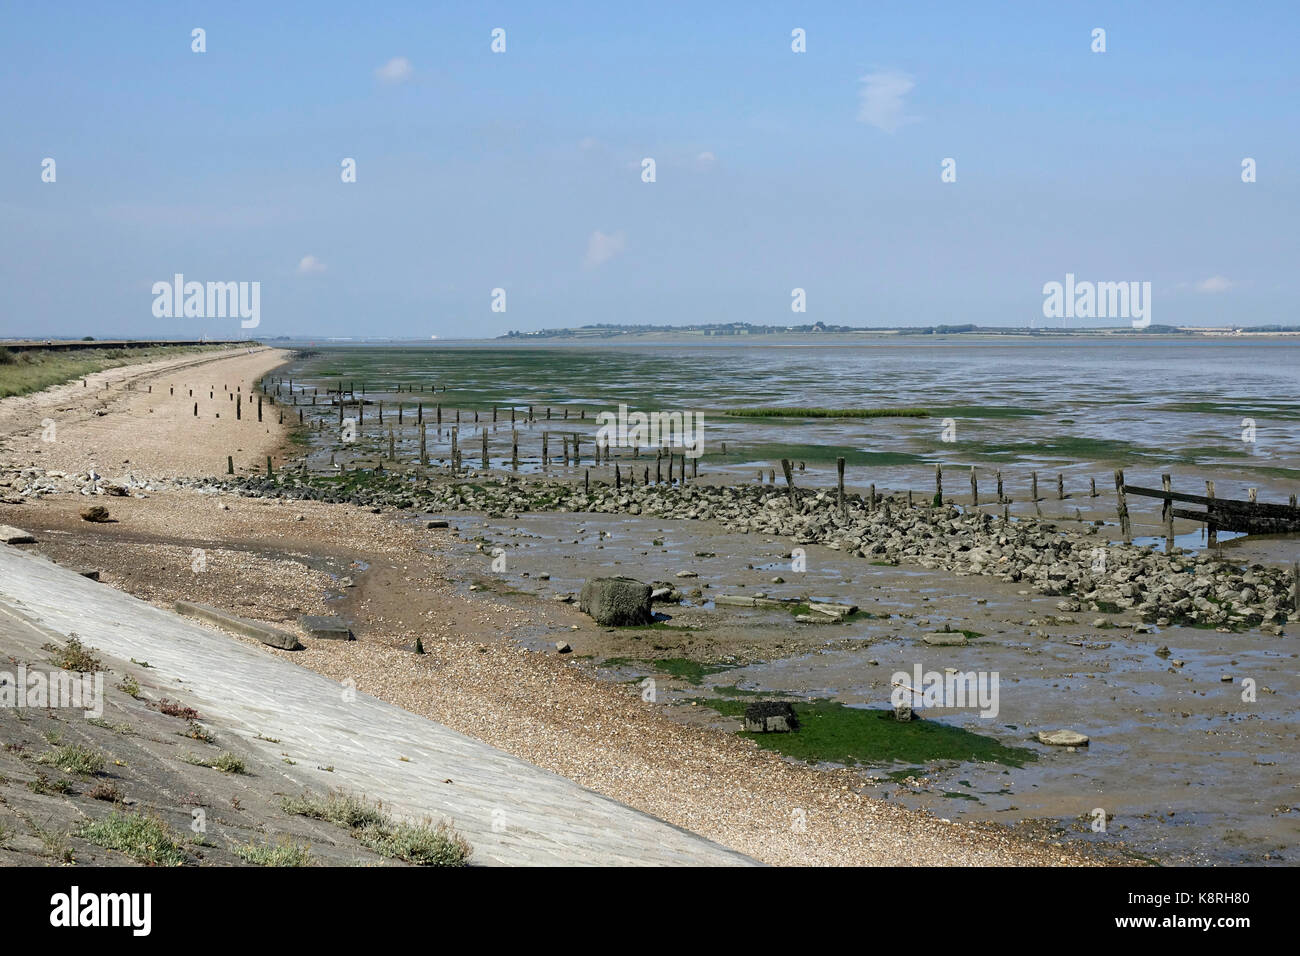 Low tide at South Swale, looking along the sea wall towards the Isle of Sheppy. Kent Wildlife Trust. - Stock Image